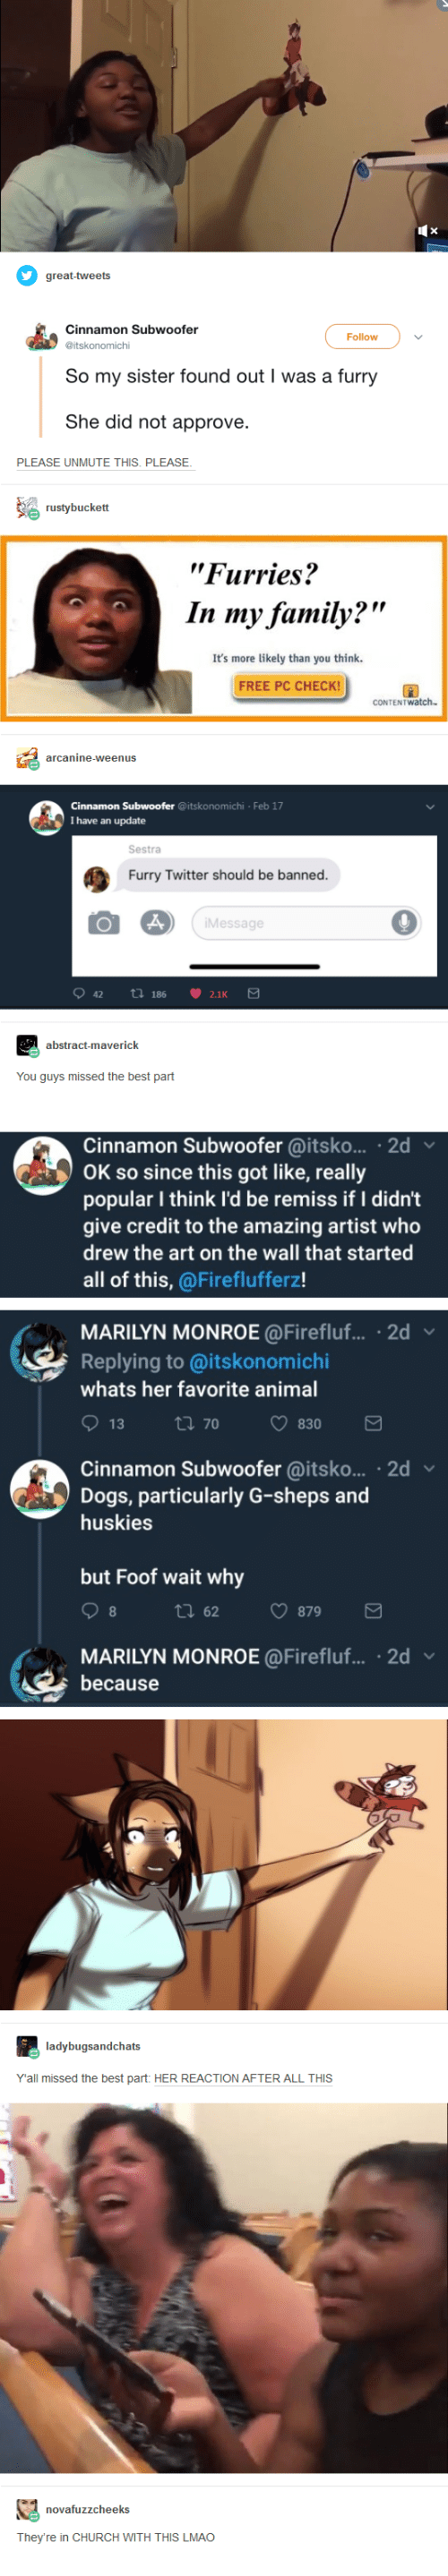 """Church, Dogs, and Family: Follow  So my sister found out I was a furry  She did not approve  PLEASE UNMUTE THIS. PLEASE  """"Furries?  In my family?""""  It's more likely than you think  FREE PC CHECK  Feb 17  I have an update  Sestra  Furry Twitter should be banned.  Message  You guys missed the best part  Cinnamon Subwoofer @itsko... 2d  OK so since this got like, really  popular I think l'd be remiss if I didn't  give credit to the amazing artist who  drew the art on the wall that started  all of this, @Fireflufferz!  MARILYN MONROE@Firefluf.... 2d  Replying to @itskonomichi  whats her favorite anima  Cinnamon Subwoofer @itsko... 2d  Dogs, particularly G-sheps and  huskies  but Foof wait why  tl 62 879  MARILYN MONROE @Firefluf... 2d v  because  Yall missed the best part: HER REACTION AFTER ALL THIS  They're in CHURCH WITH THIS LMAO"""